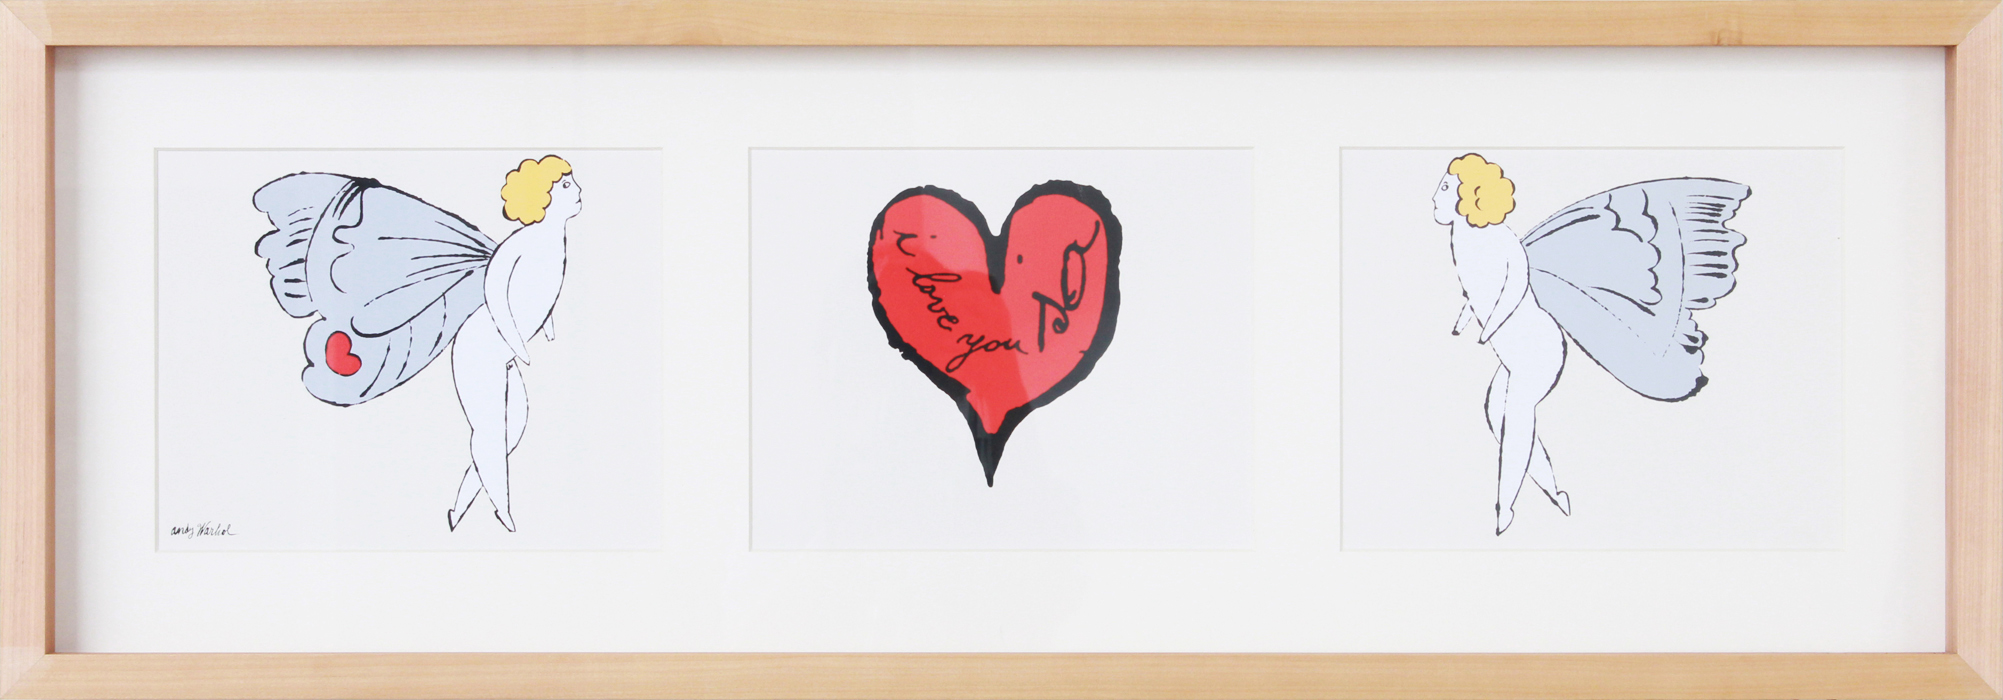 I Love You So, c. 1958 (Triptych)